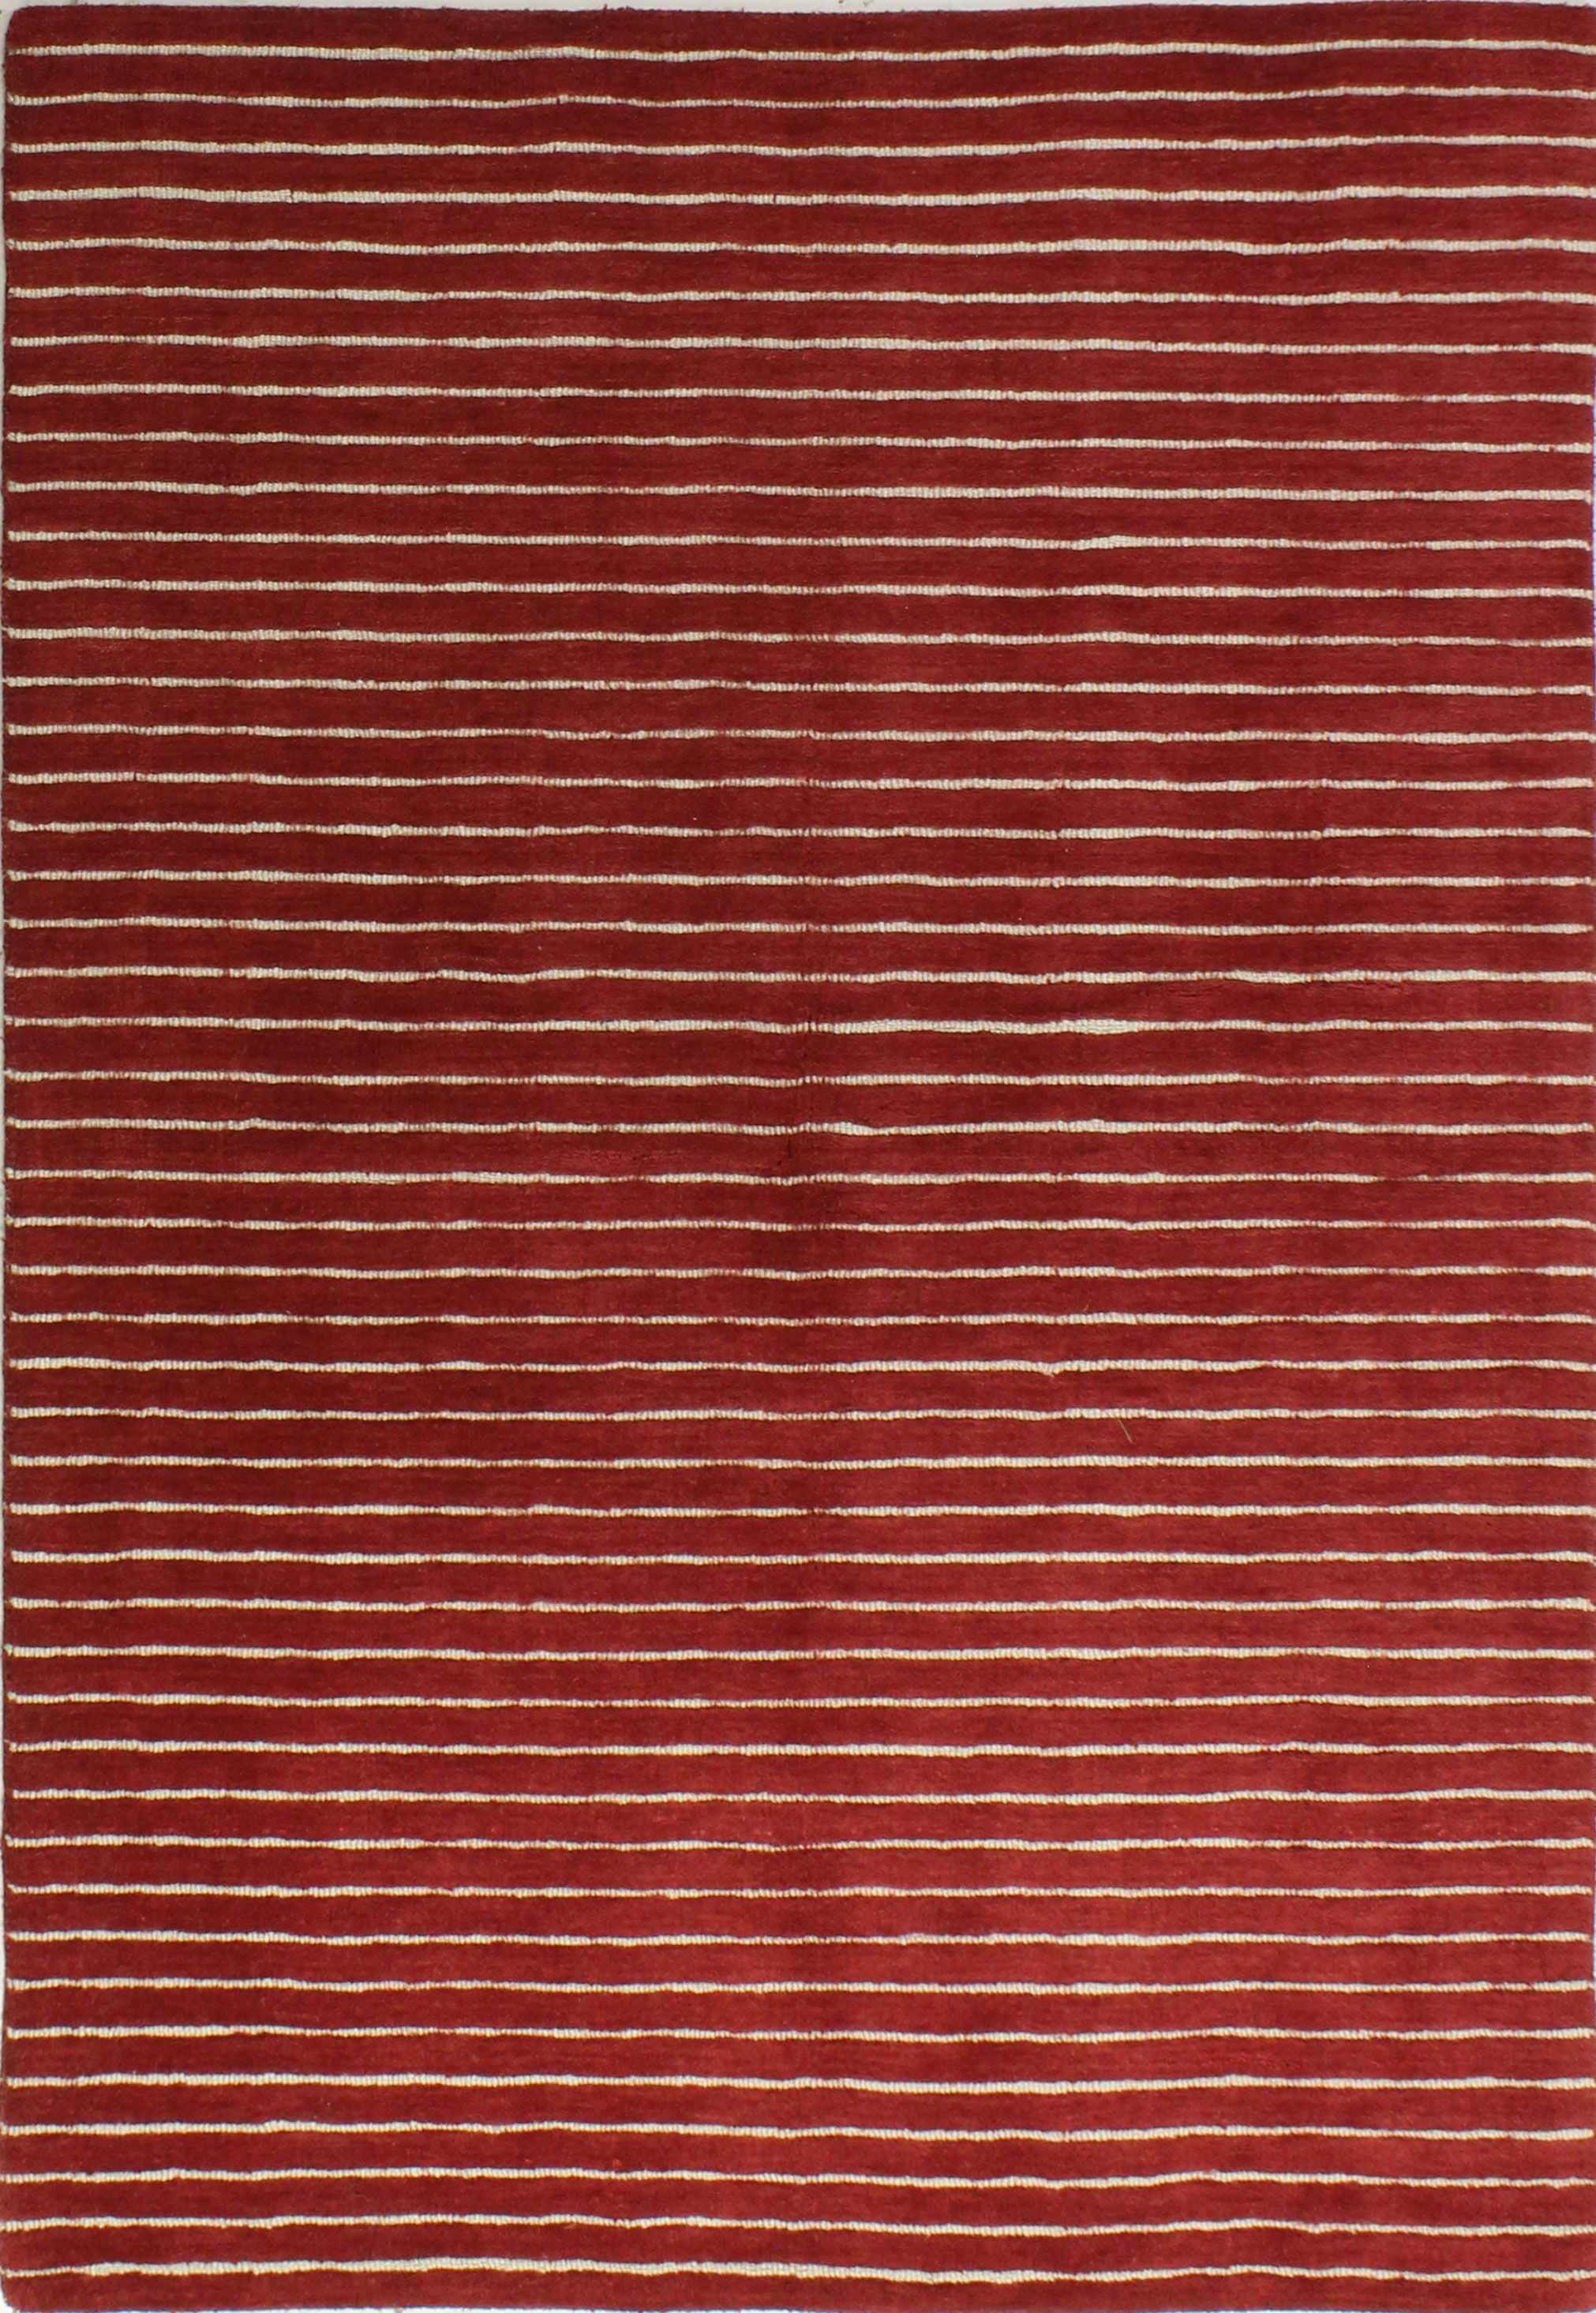 Grayville Hand Woven Wool Red Area Rug Rug Size: Rectangle 3'6